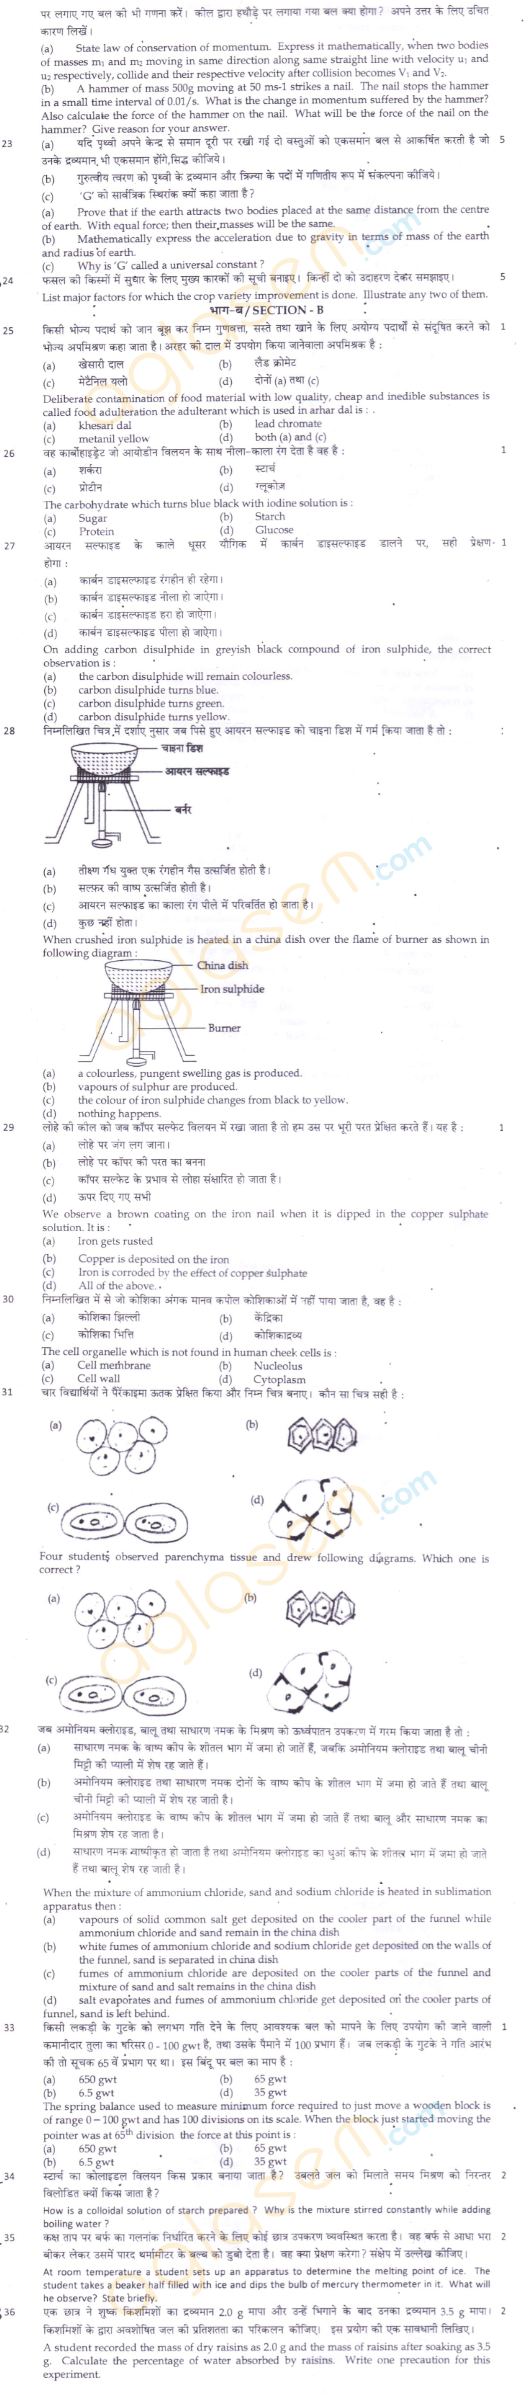 english sa1 2012 question ppr class Class – vii (english) sample paper page 1 of 10 first term examination 2009-10 different schools after  class 7 cbse english question paper uploaded by.